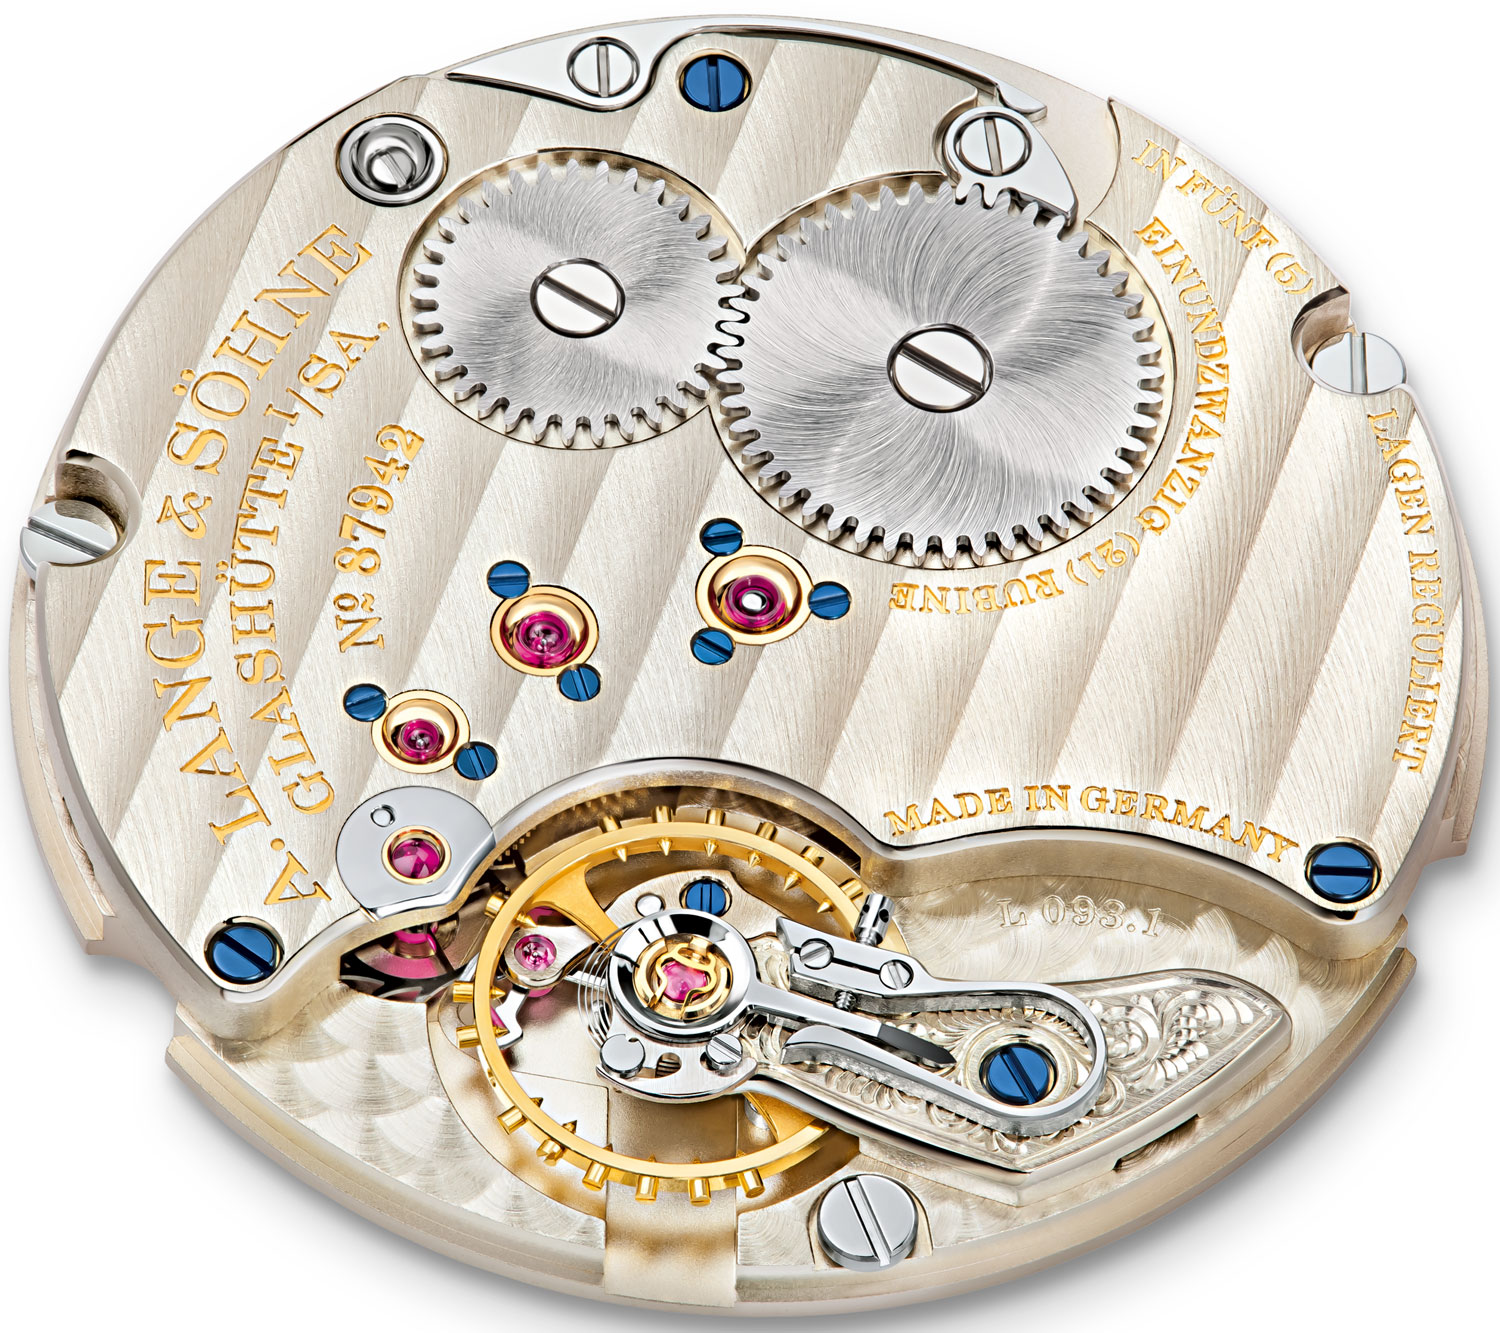 The Thinnest Watch by A  Lange & Söhne at SIHH 2012